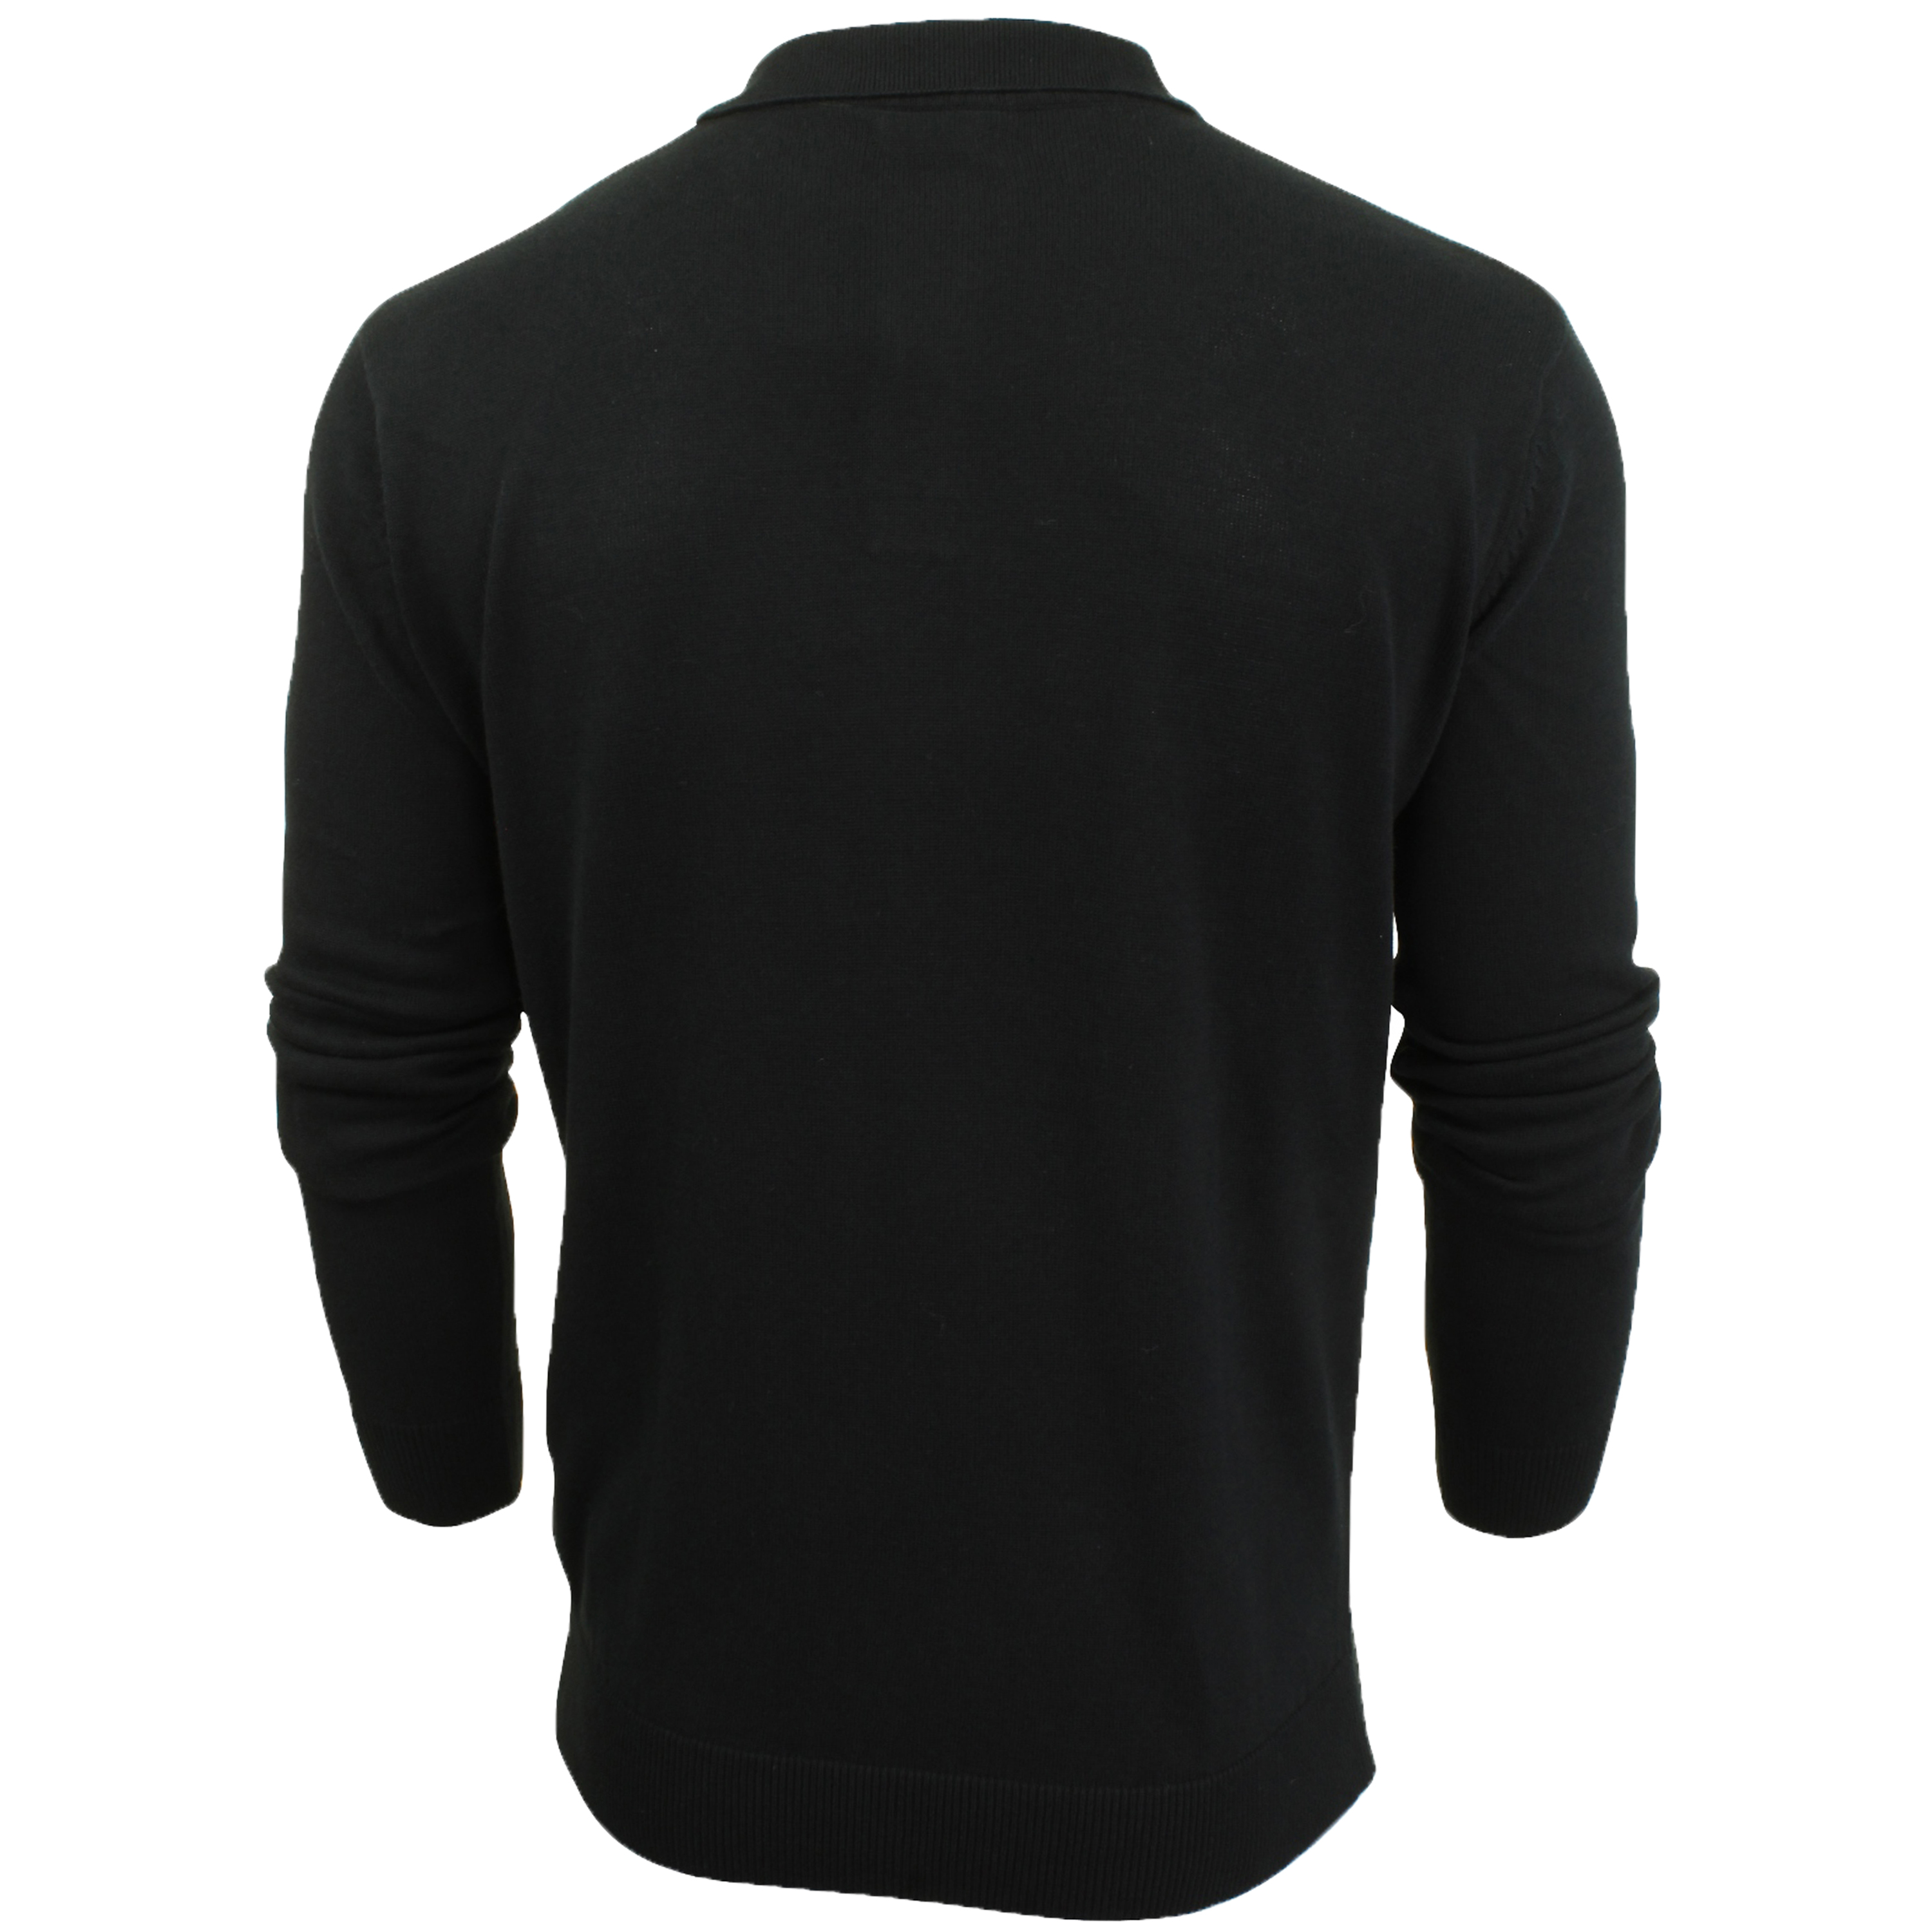 Mens-Knitted-Jumper-Brave-Soul-Polo-Top-Sweater-PLACKET-Pullover-Lightweight-New thumbnail 11